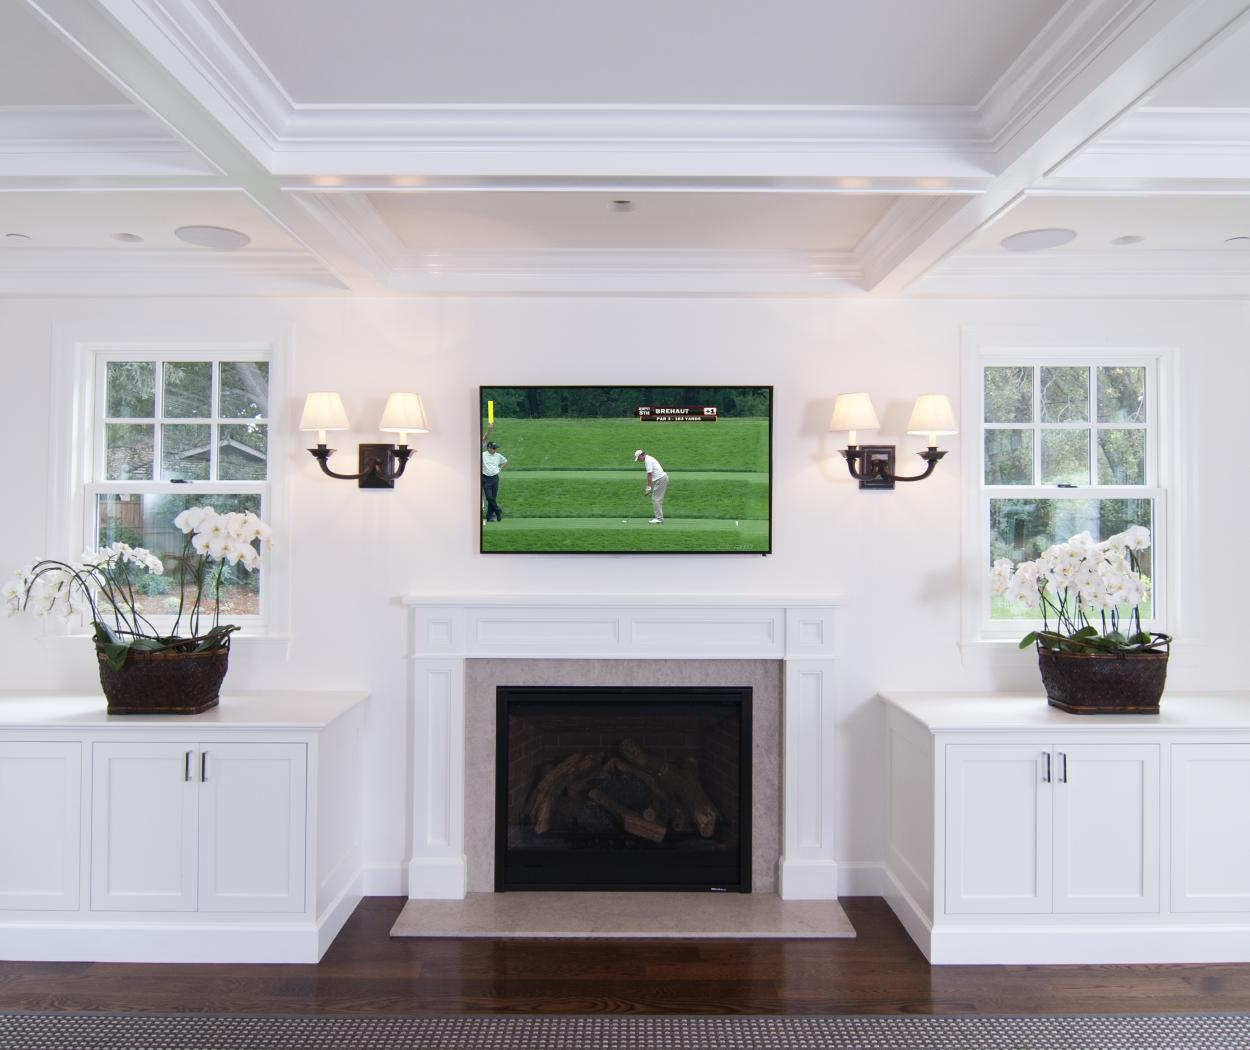 White Transitional, Shaker Style Entertainment Center with Two Built-Ins, Fire Mantel and Chrome Hardware Pulls